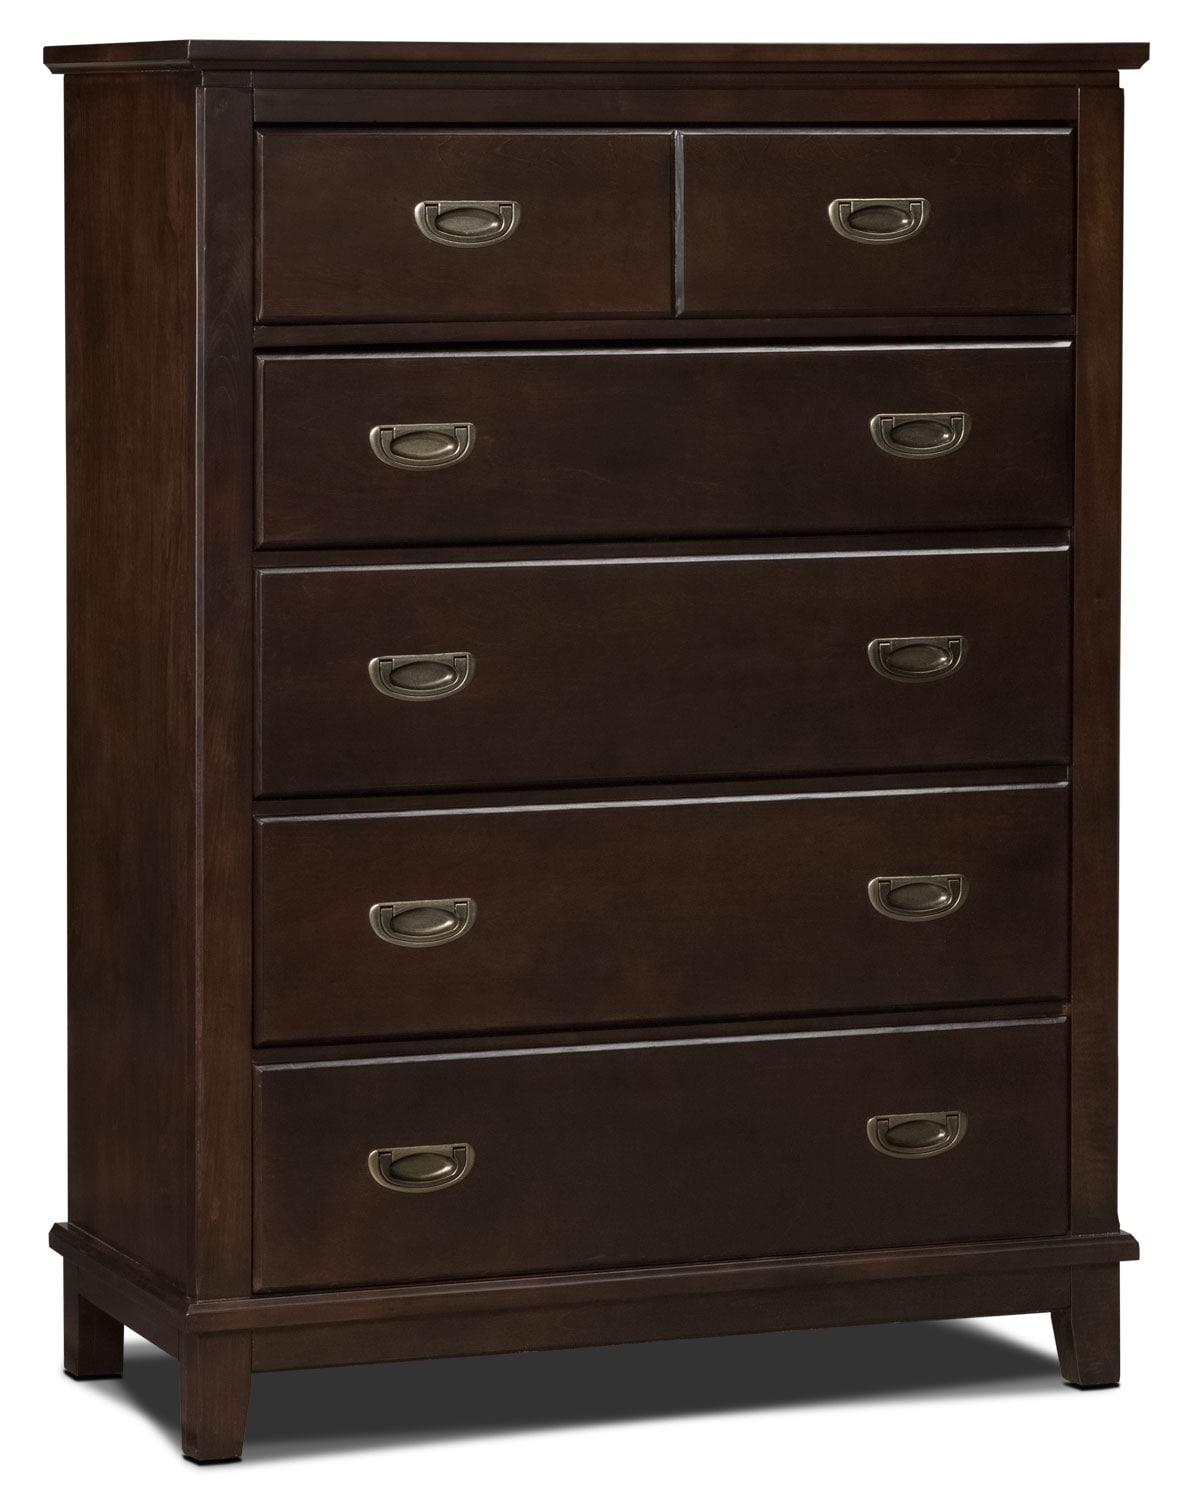 Kids Furniture - Chadwick Chest - Espresso